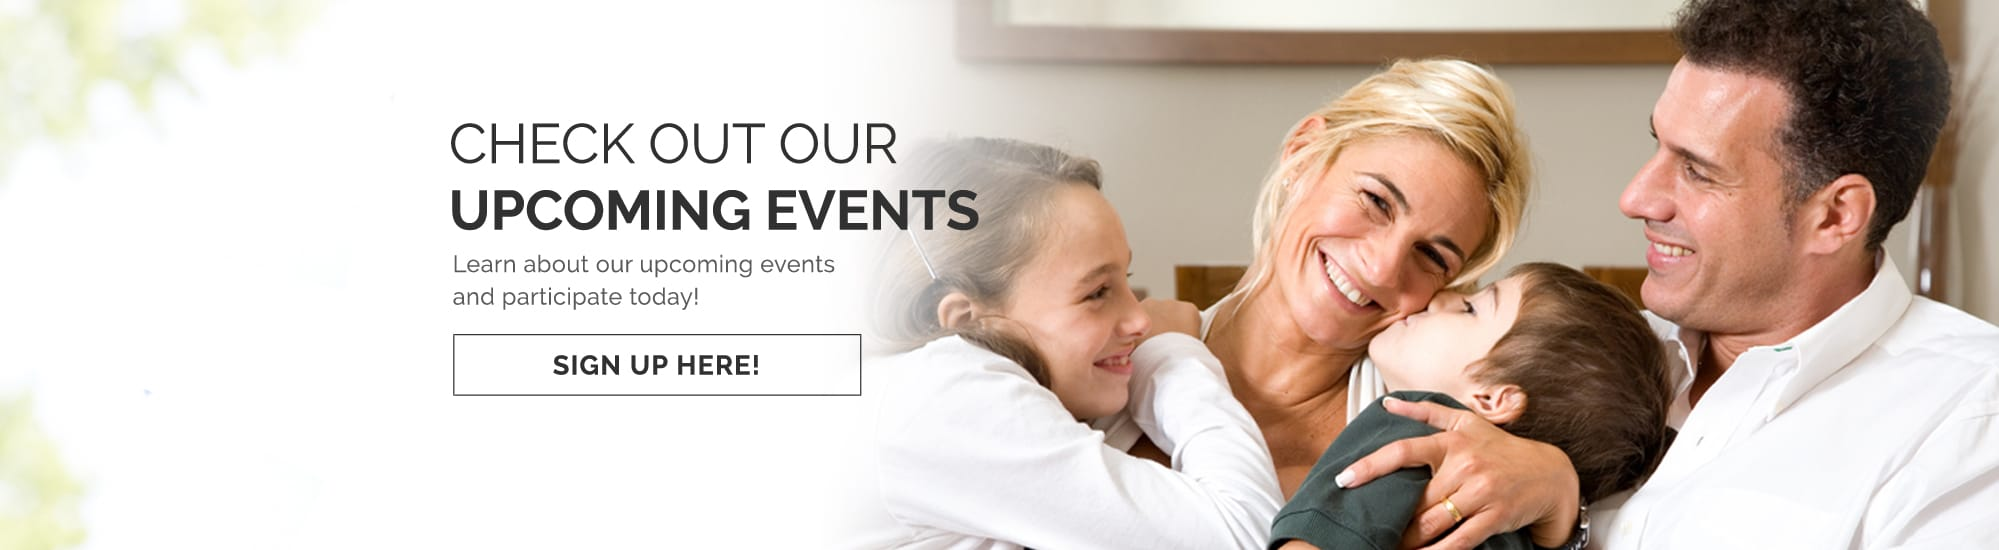 upcoming events slider